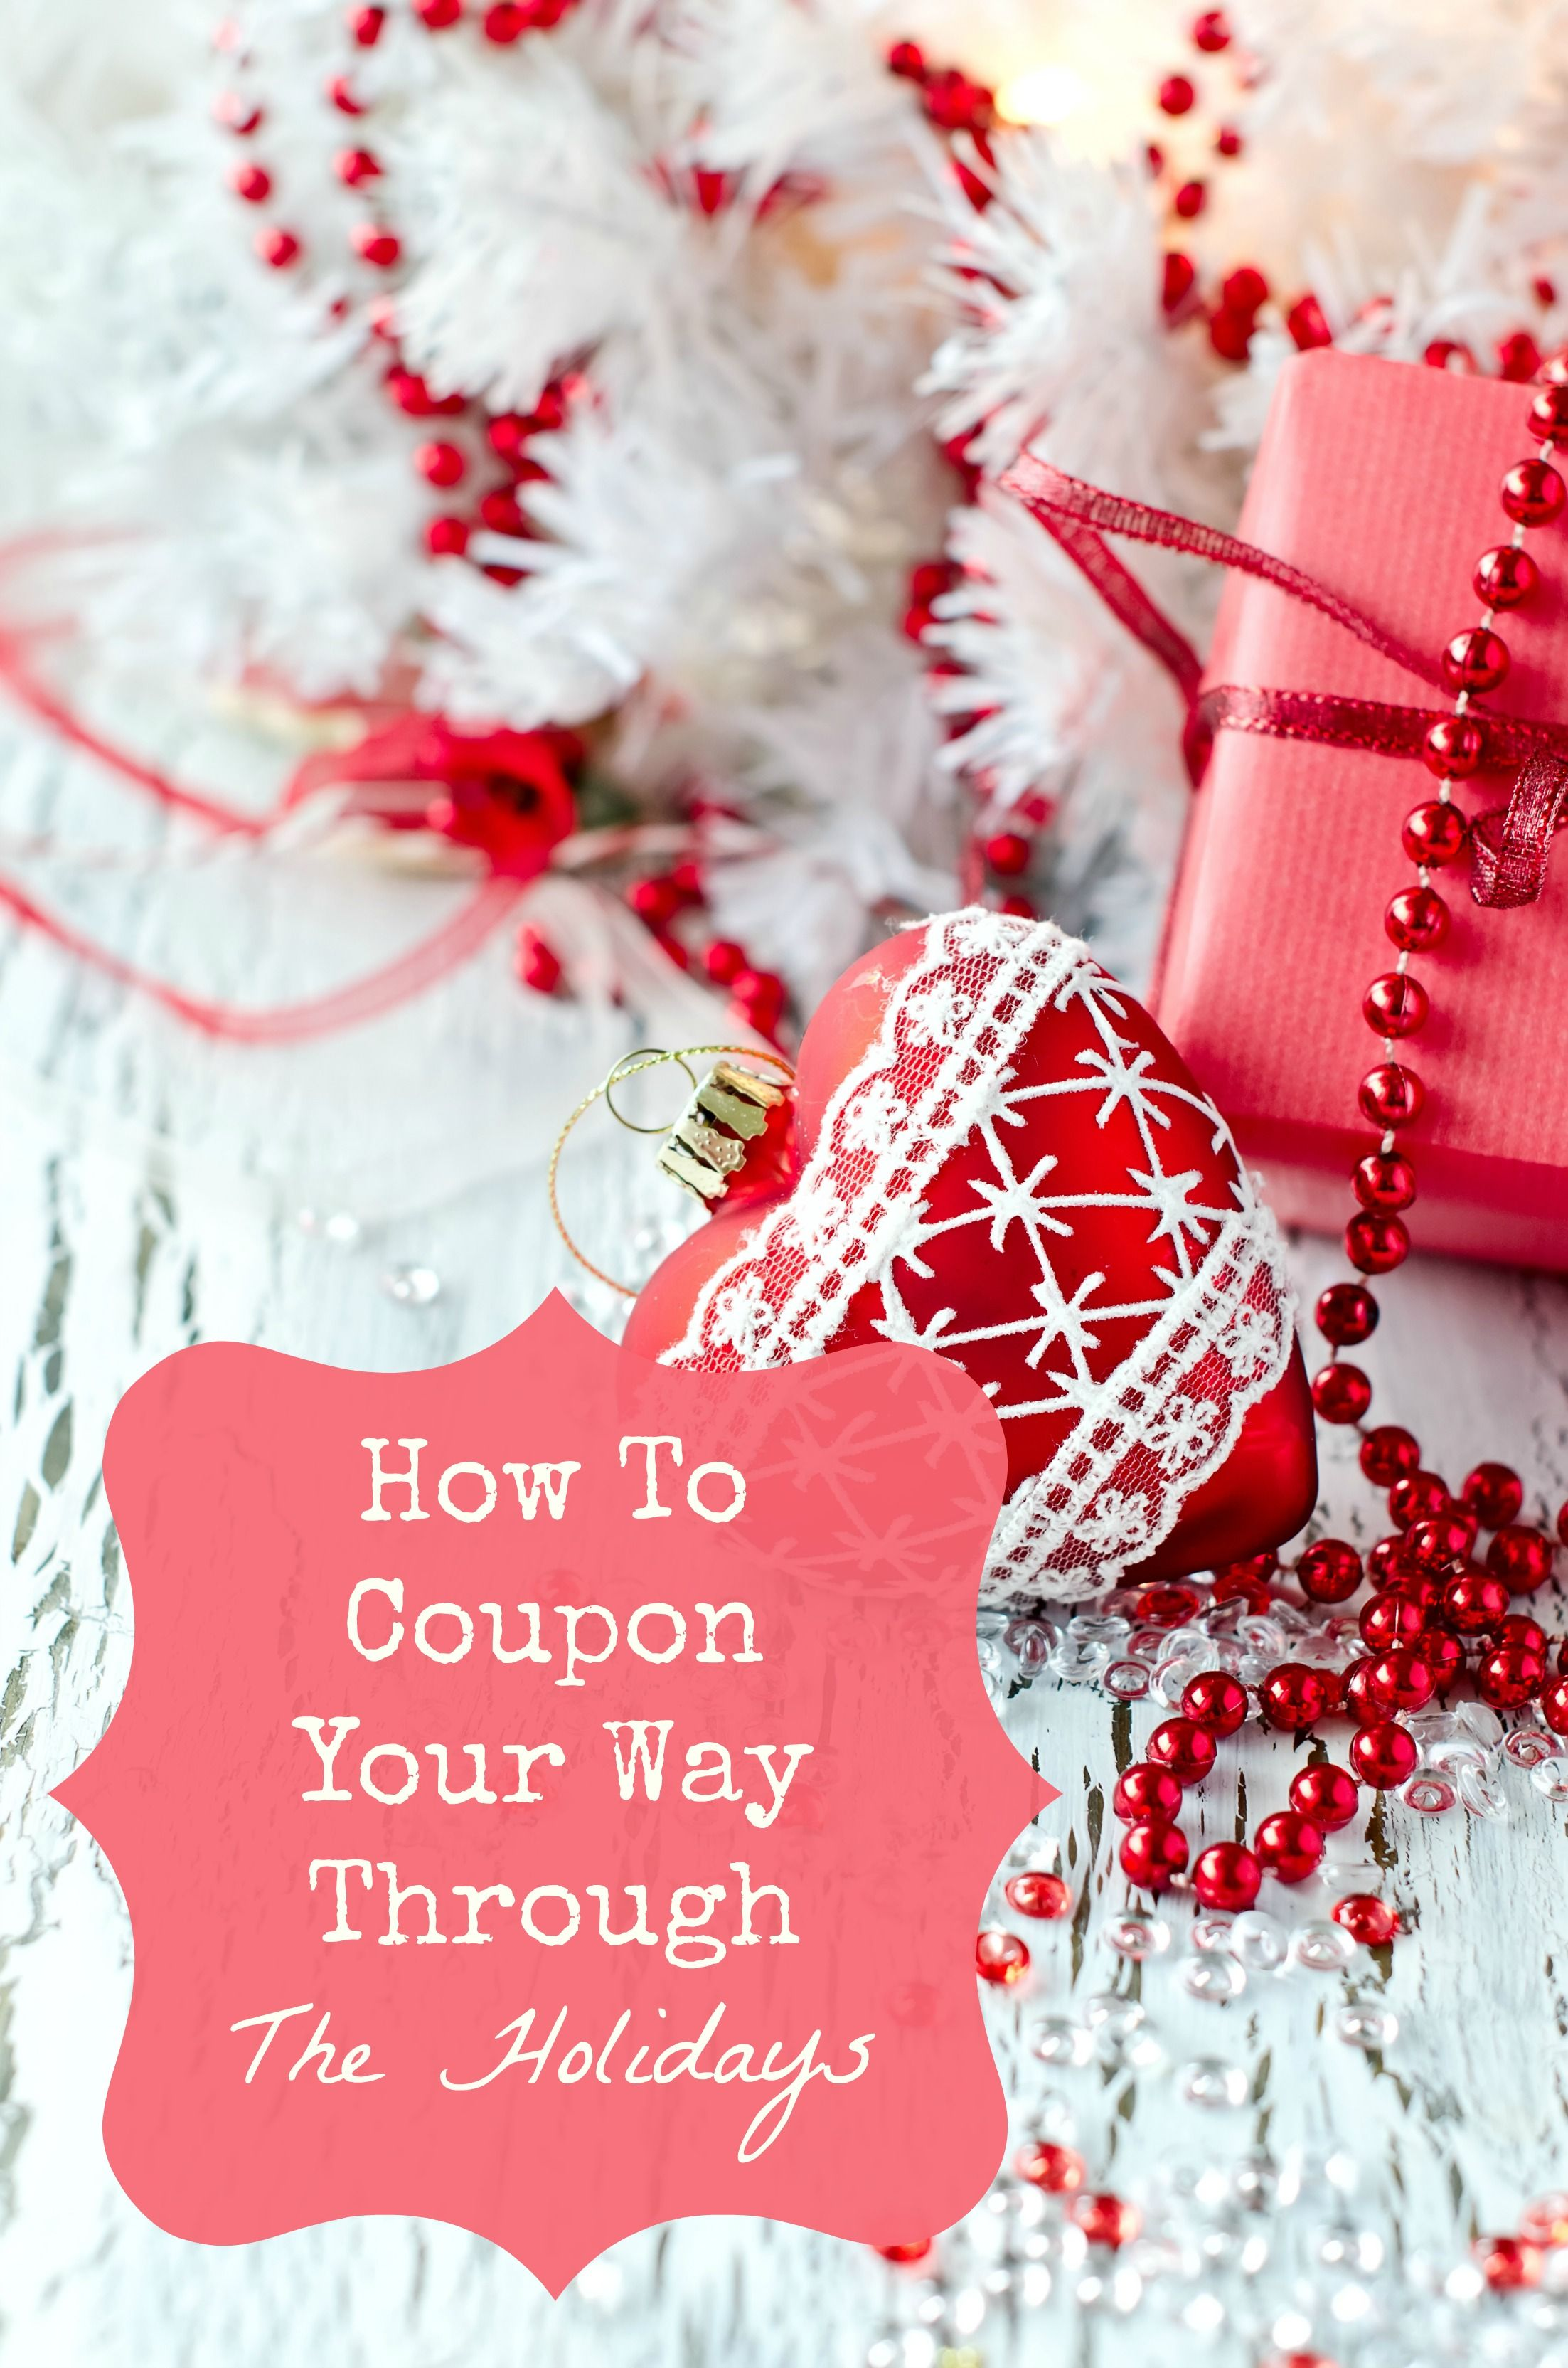 How To Coupon Your Way Through The Holidays